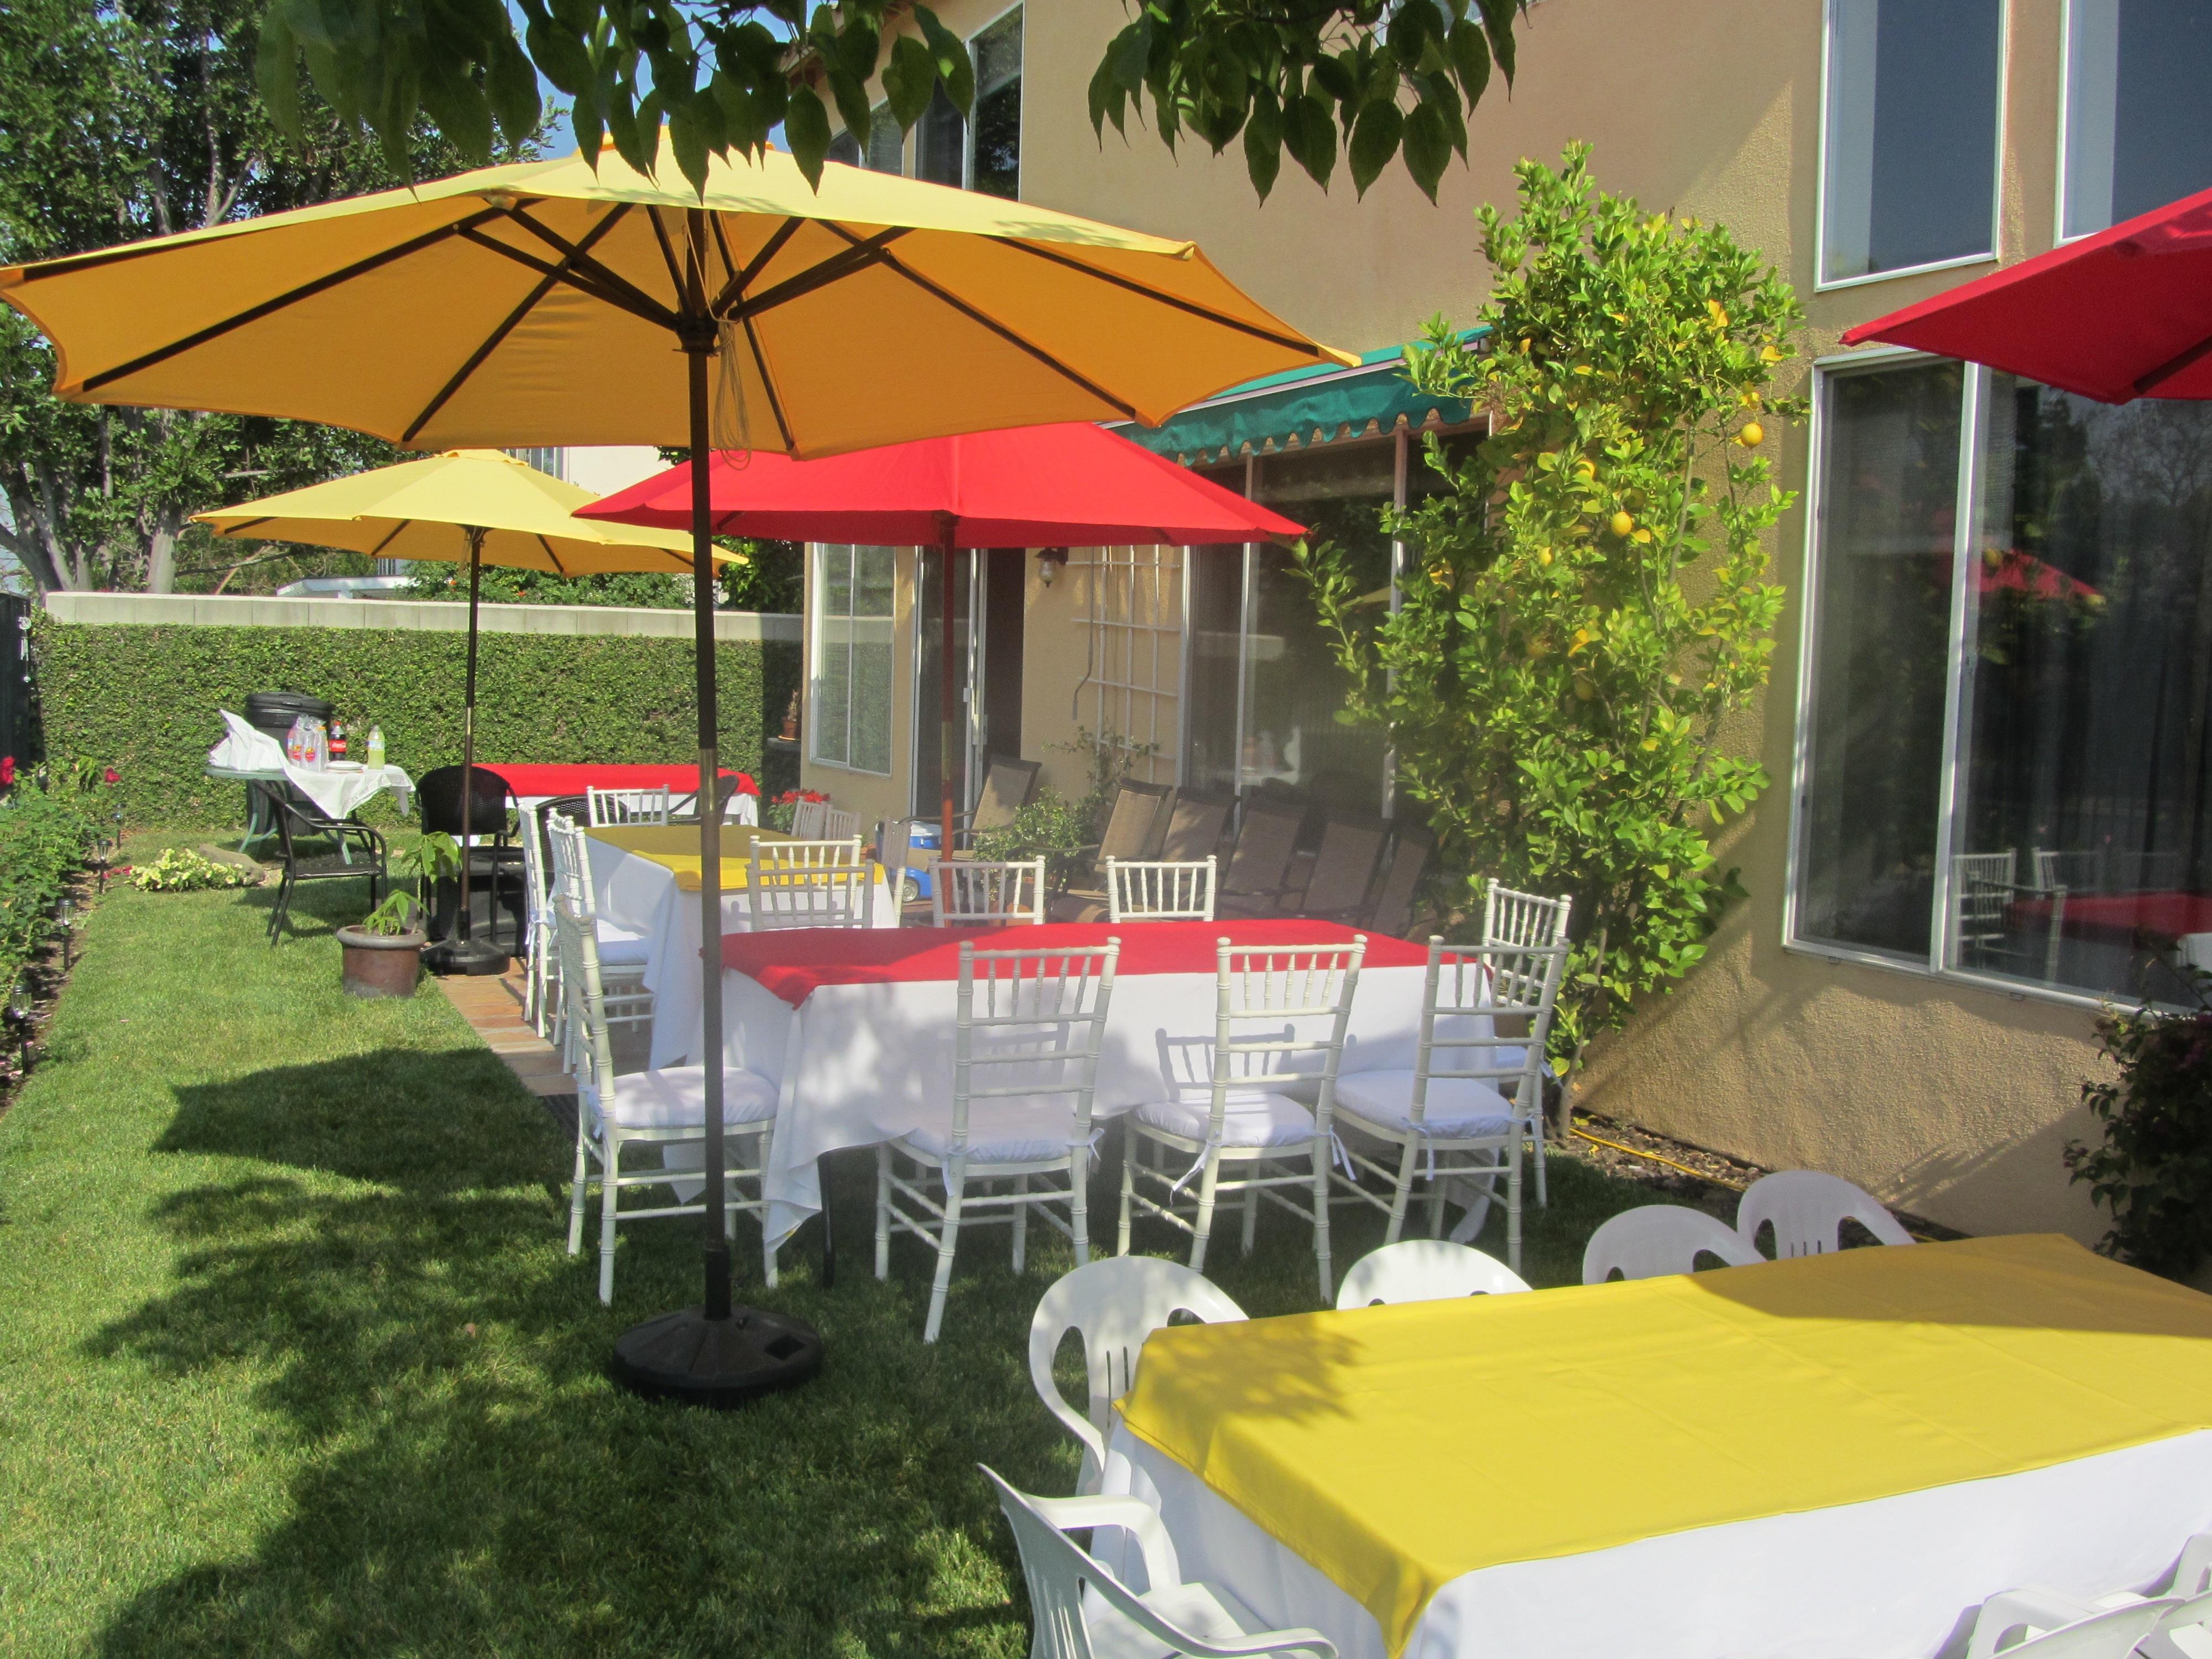 Where Can I Rent Tables And Chairs Rental Kids Table Chairs Retailadvisor